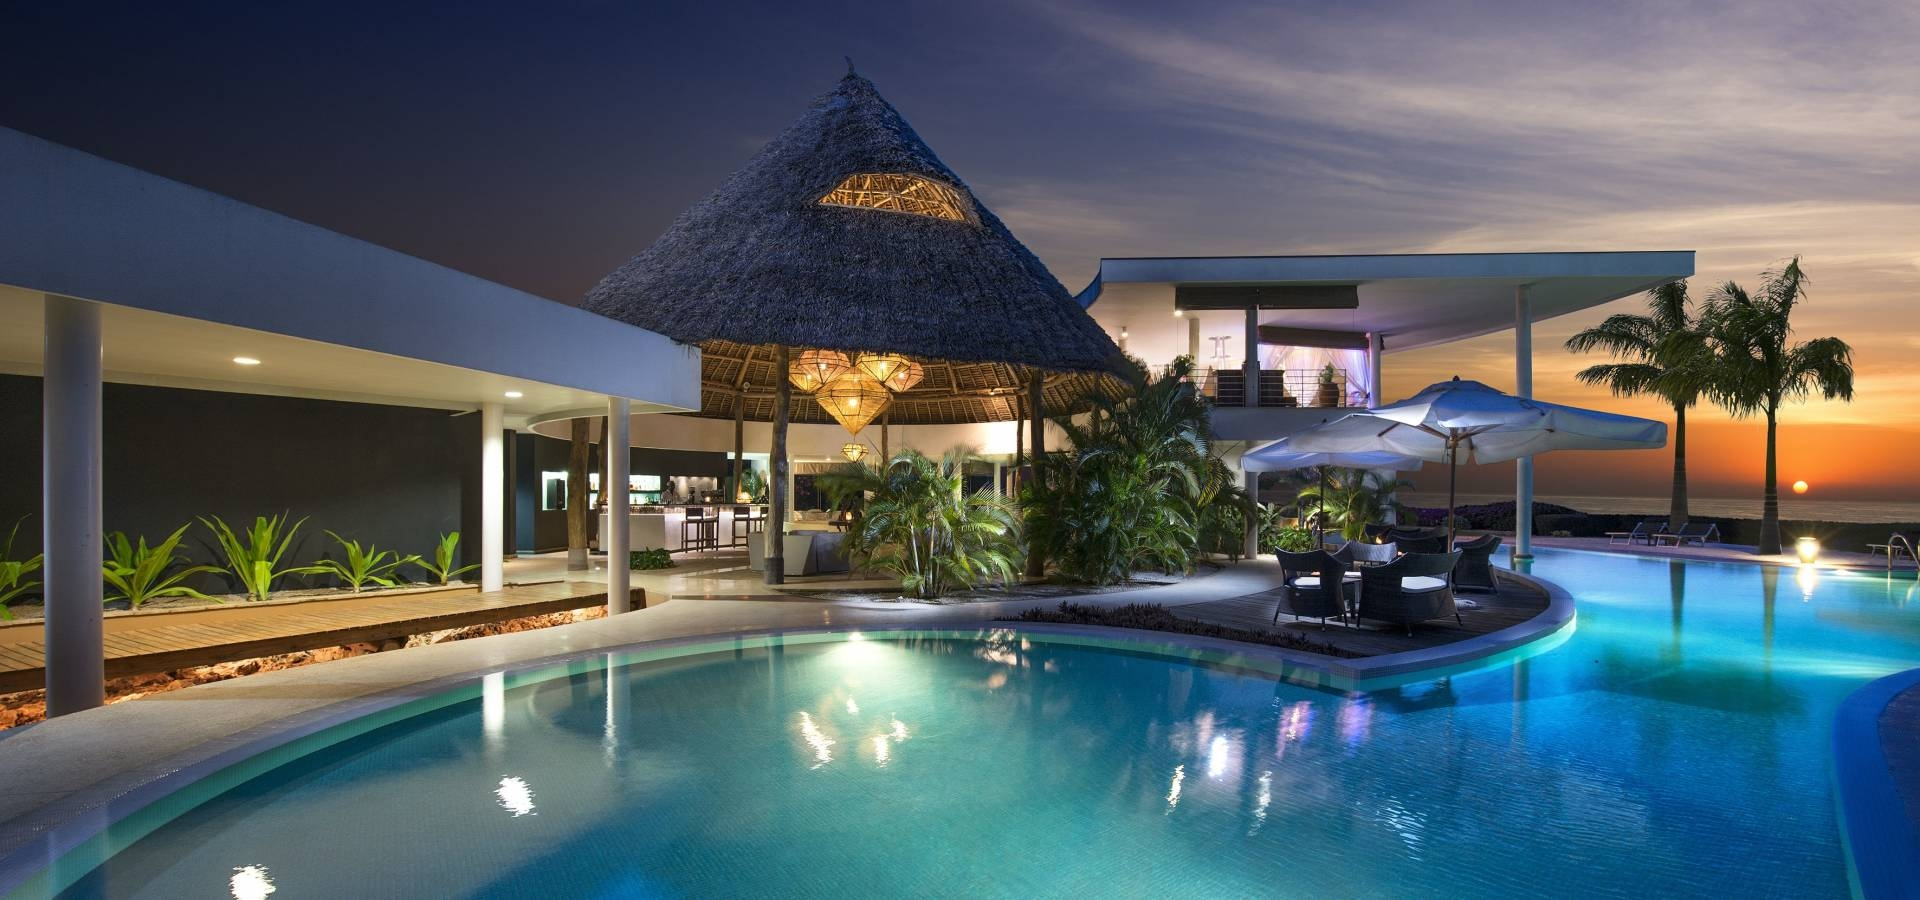 Zanzibar - Villas Diamonds Star of The East